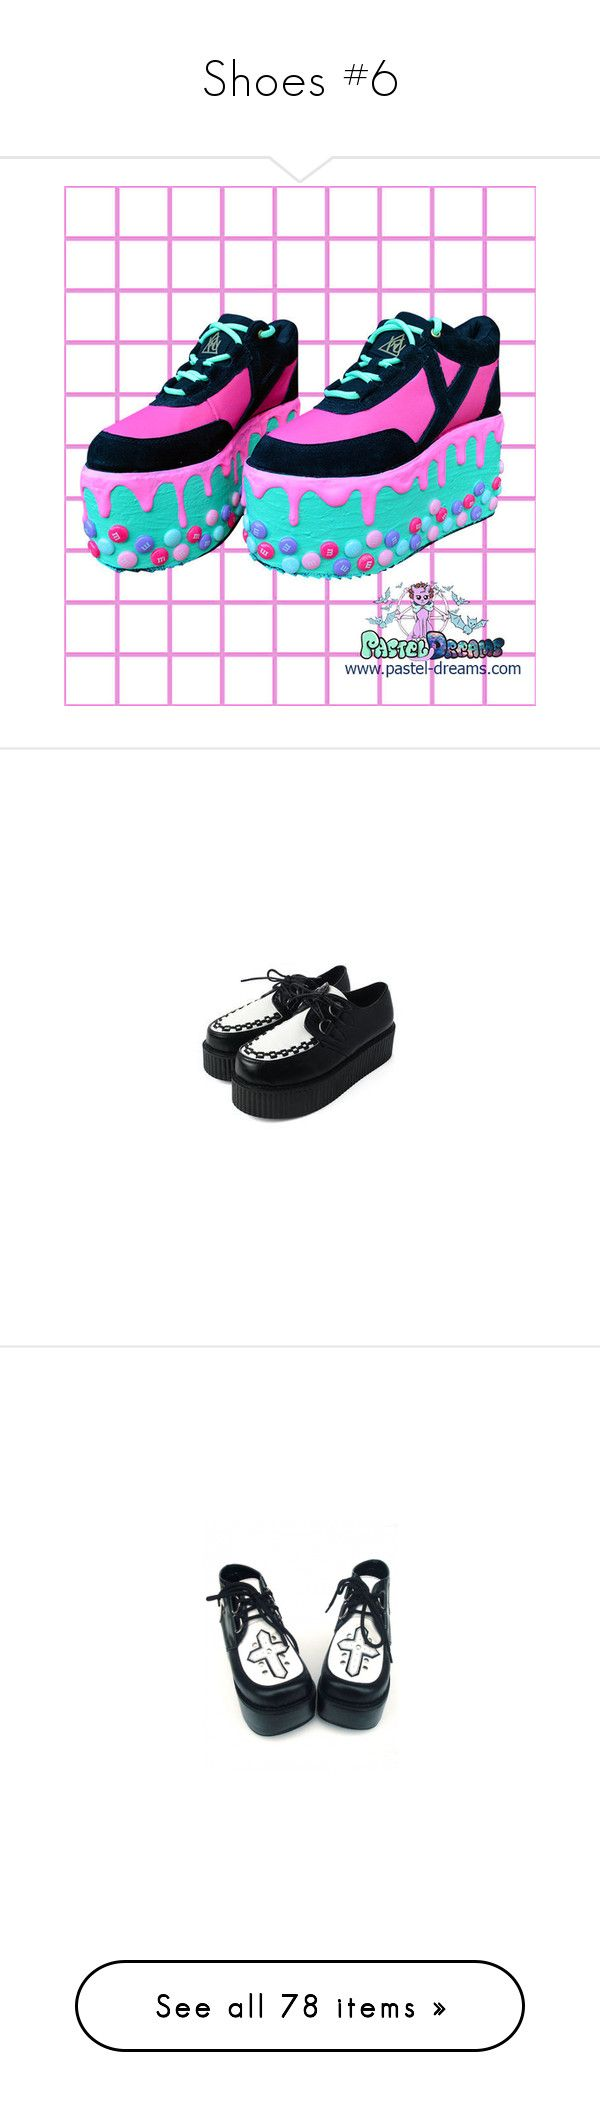 """""""Shoes #6"""" by headbangingunicorn ❤ liked on Polyvore featuring shoes, flatform shoes, platform shoes, flatform platform shoes, creepers, boots, black metallic shoes, rock boots, rock shoes and metallic platform shoes"""